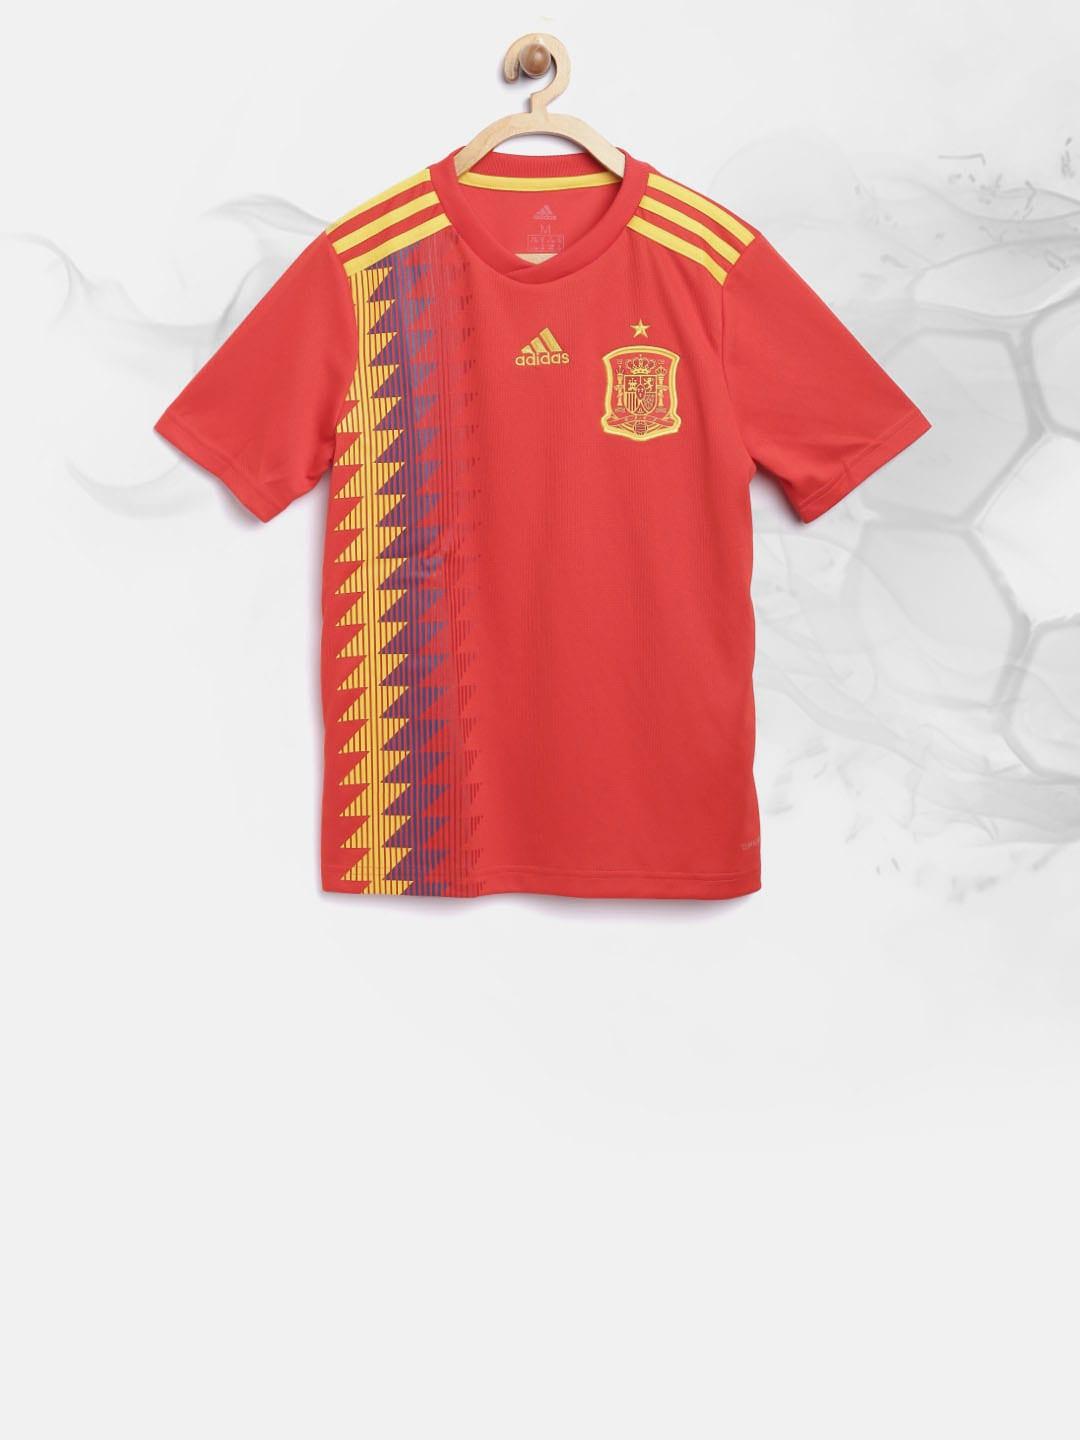 Spain Jersey Boys Red Round Football Shirt T Neck Adidas Home Printed qLUpGSzMV